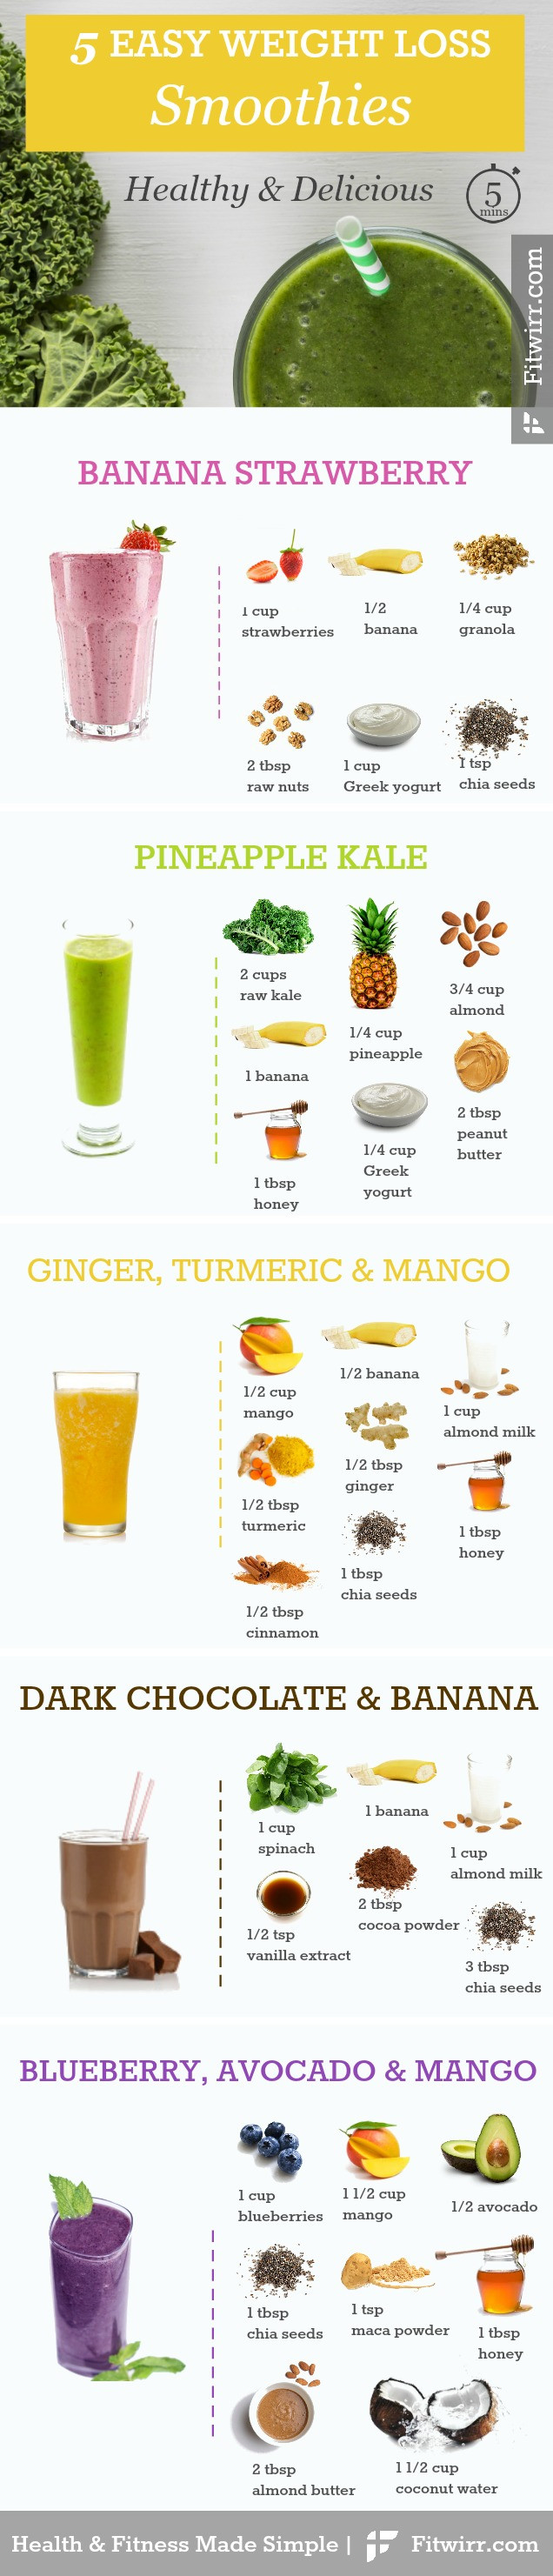 Healthiest Smoothies For Weight Loss  5 Best Smoothie Recipes for Weight Loss